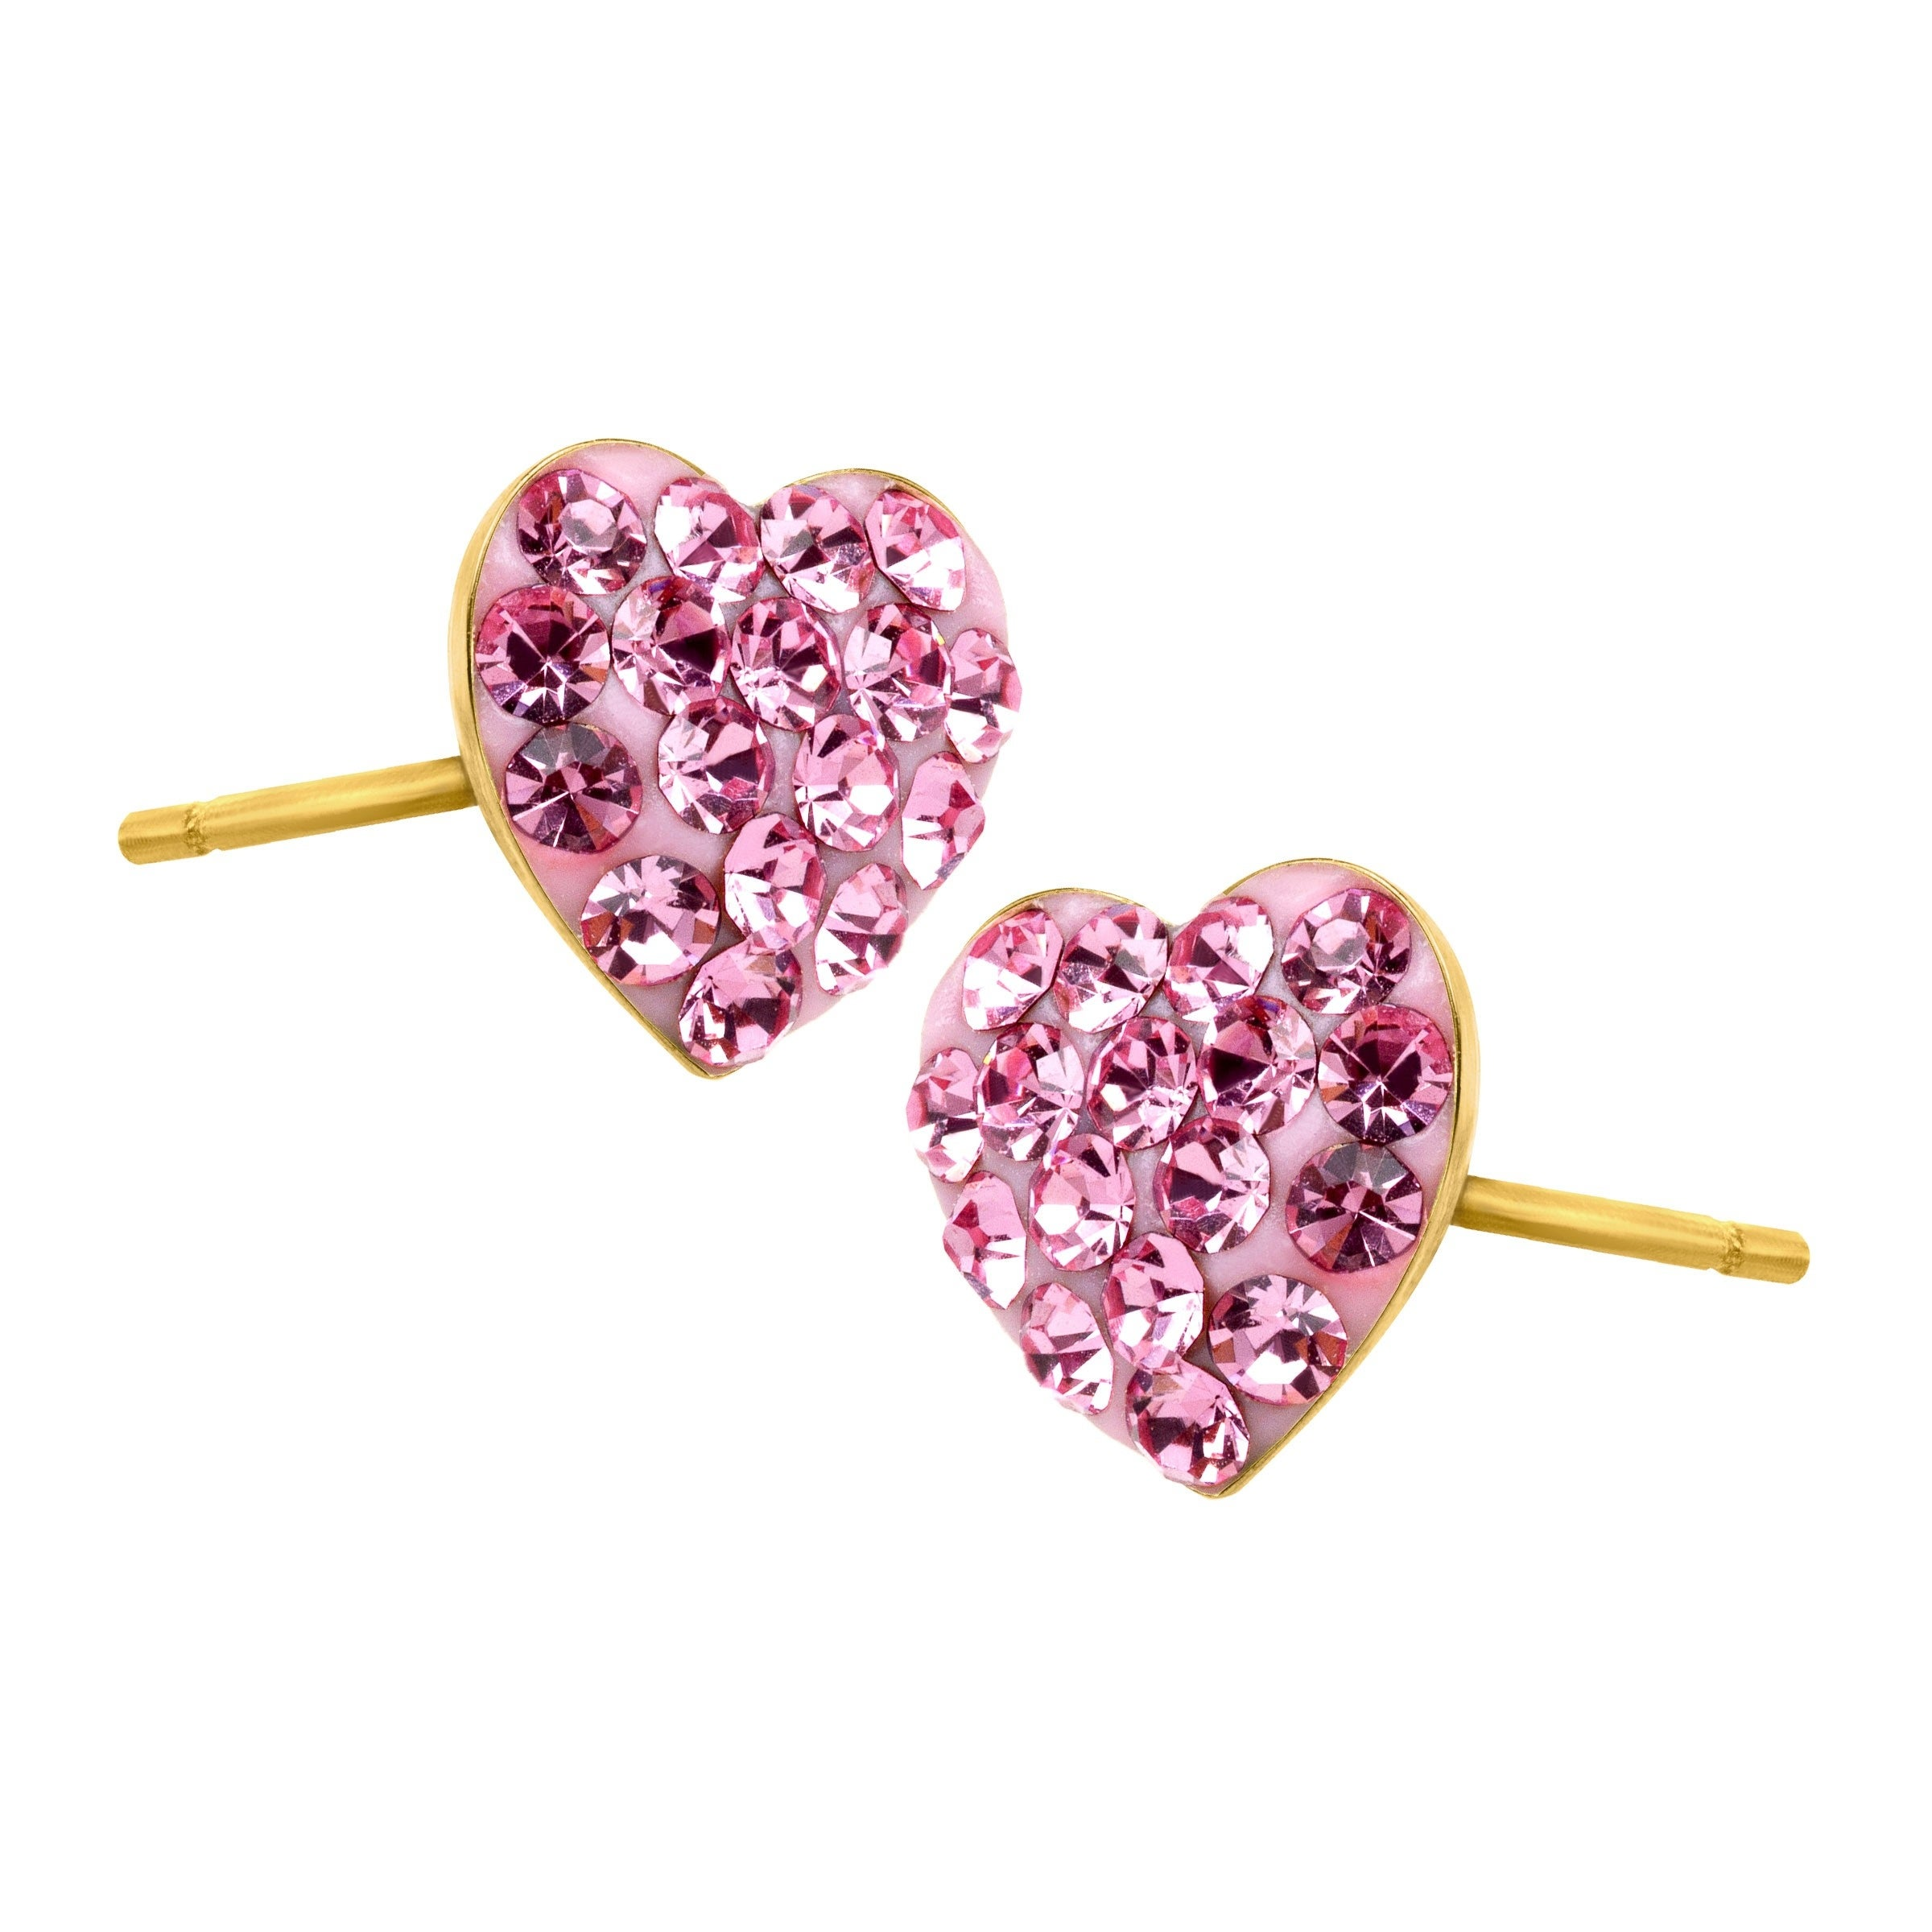 7f4529b0f Shop Girl's Heart Stud Earrings with Pink Crystals in 14K Gold - On Sale -  Free Shipping On Orders Over $45 - Overstock - 18538419